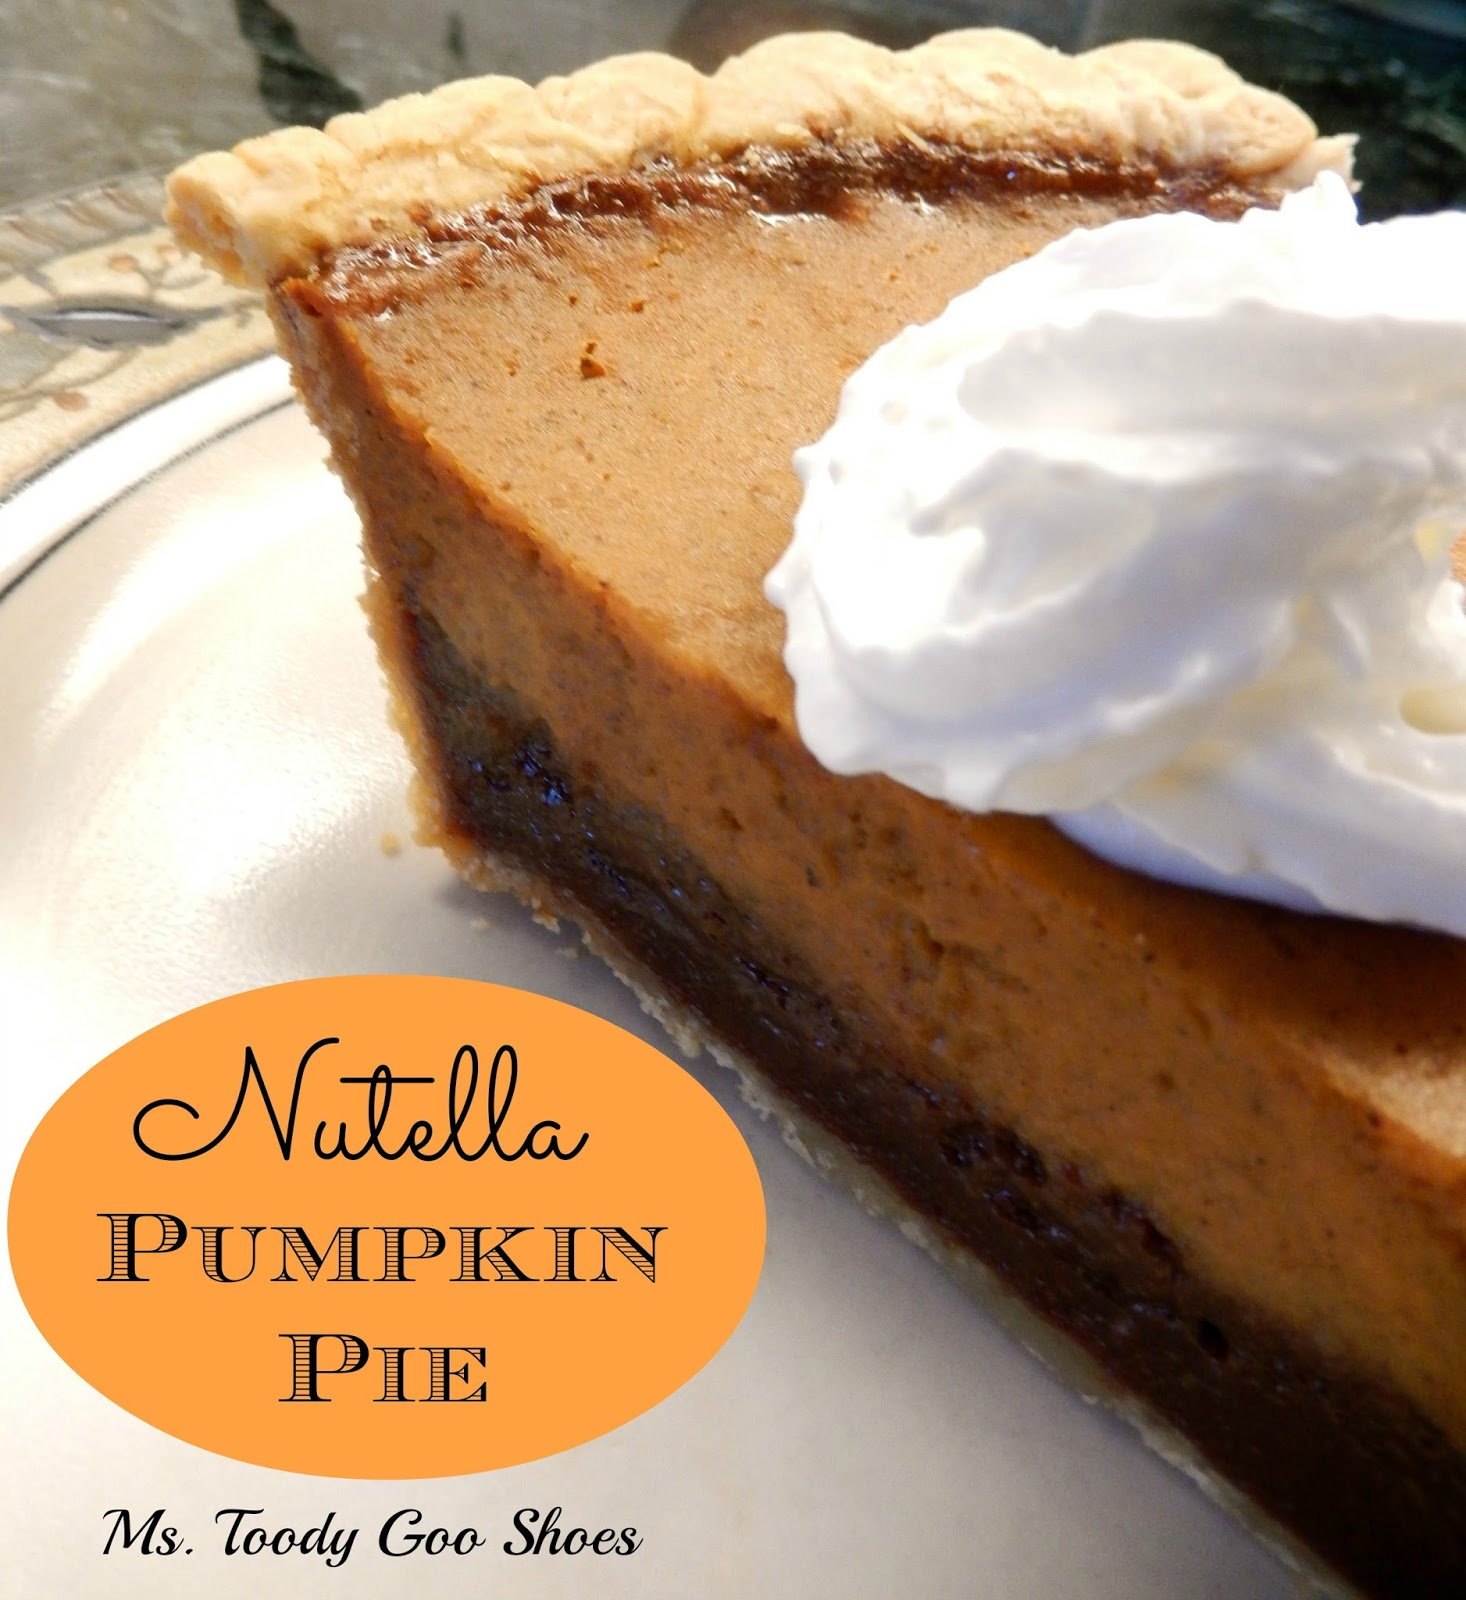 Nutella Pumpkin Pie --- Ms. Toody Goo Shoes